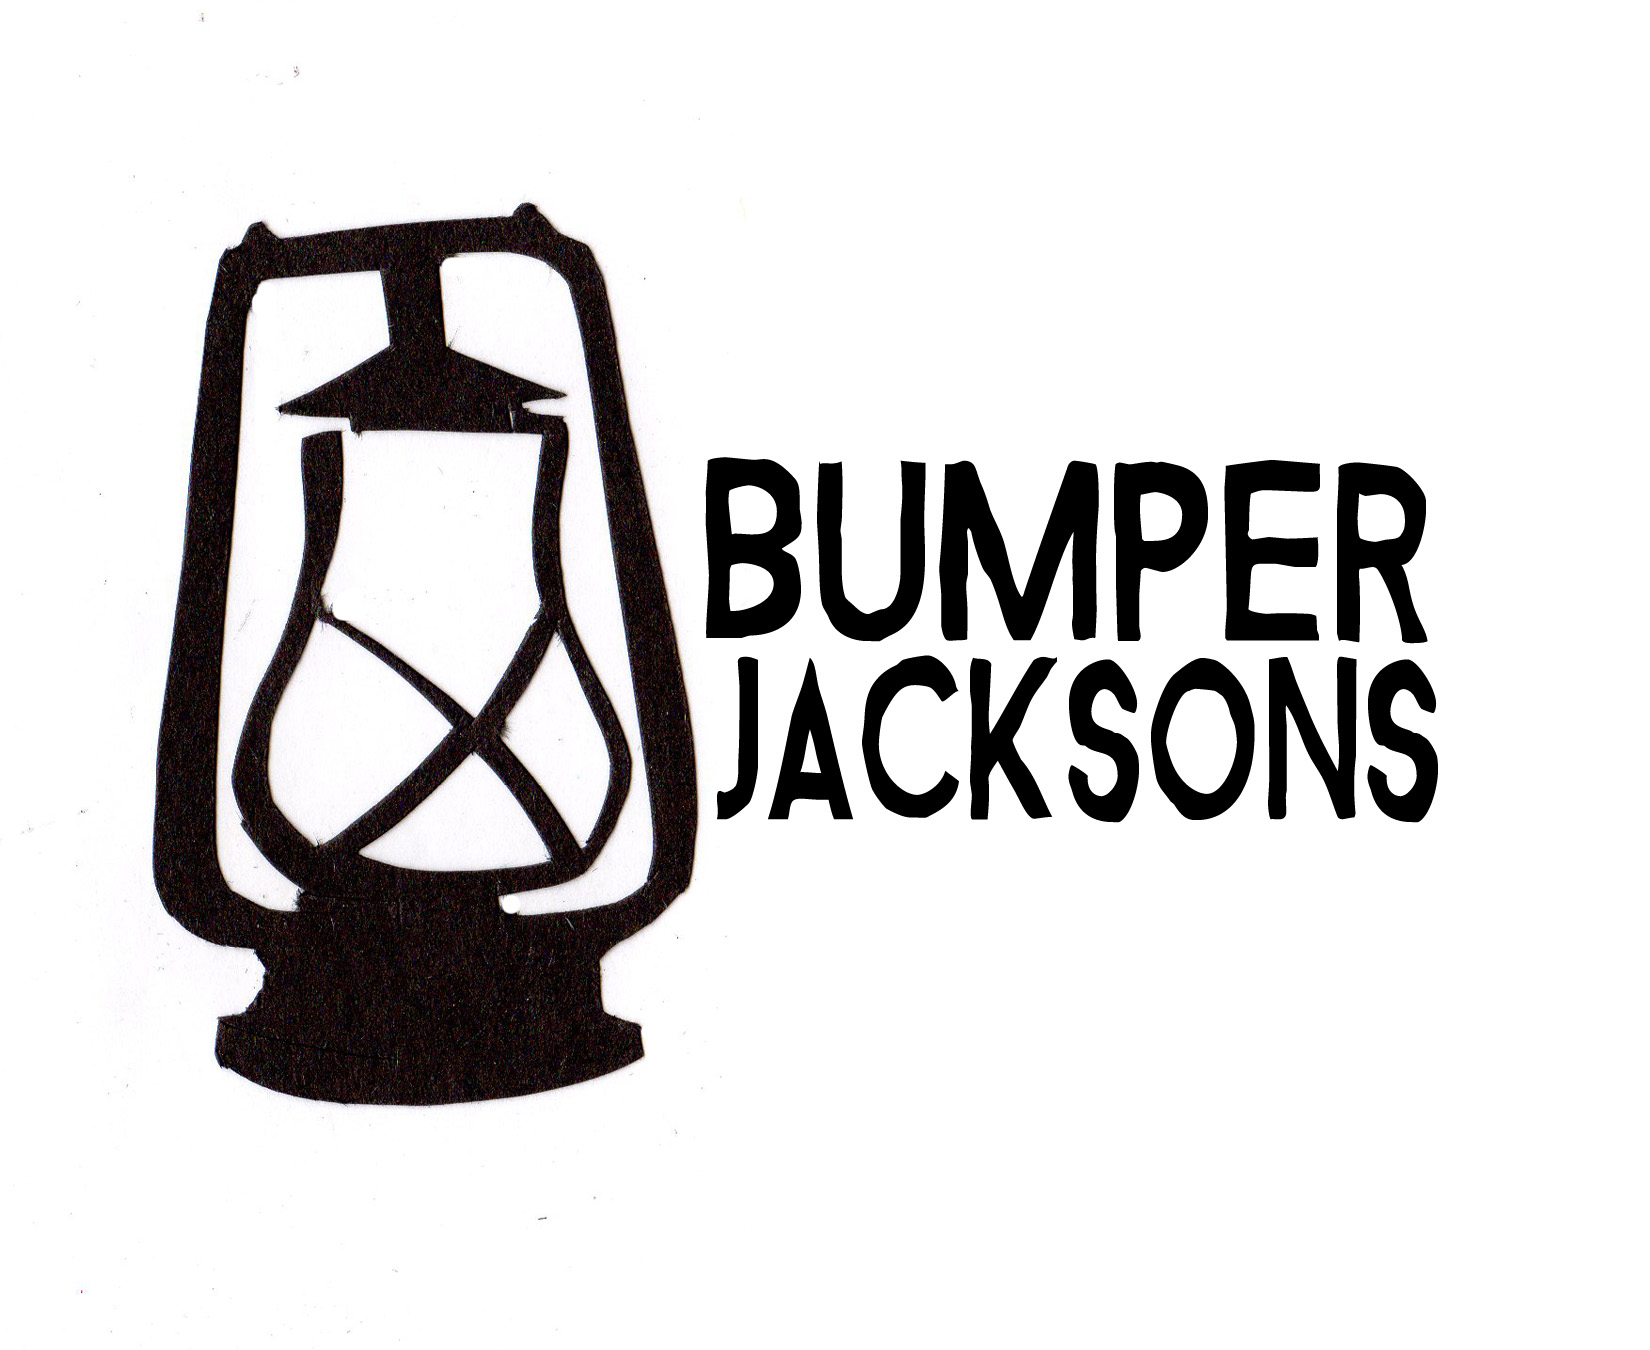 Bumper Jacksons postcard element.jpg